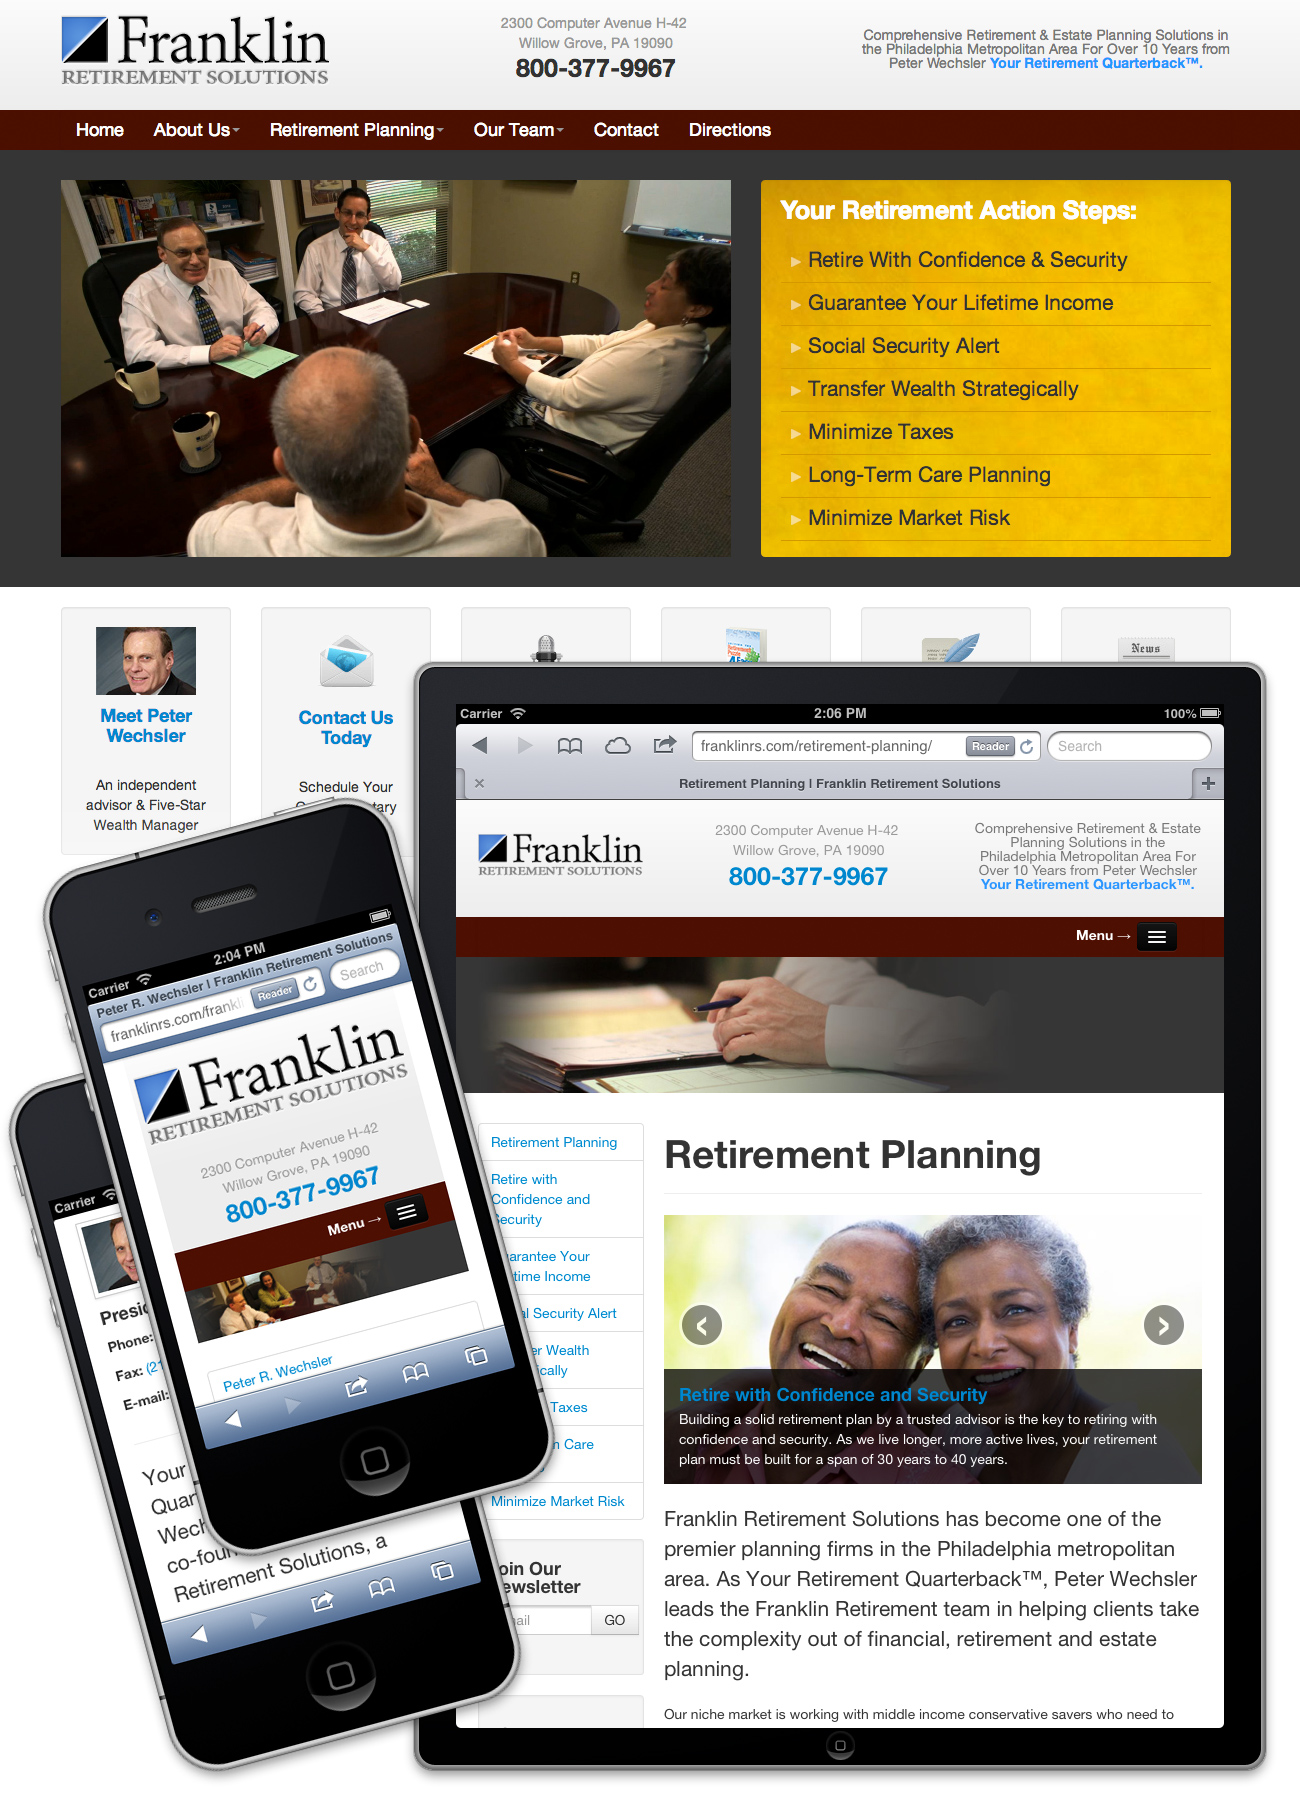 Franklin Retirement Solutions